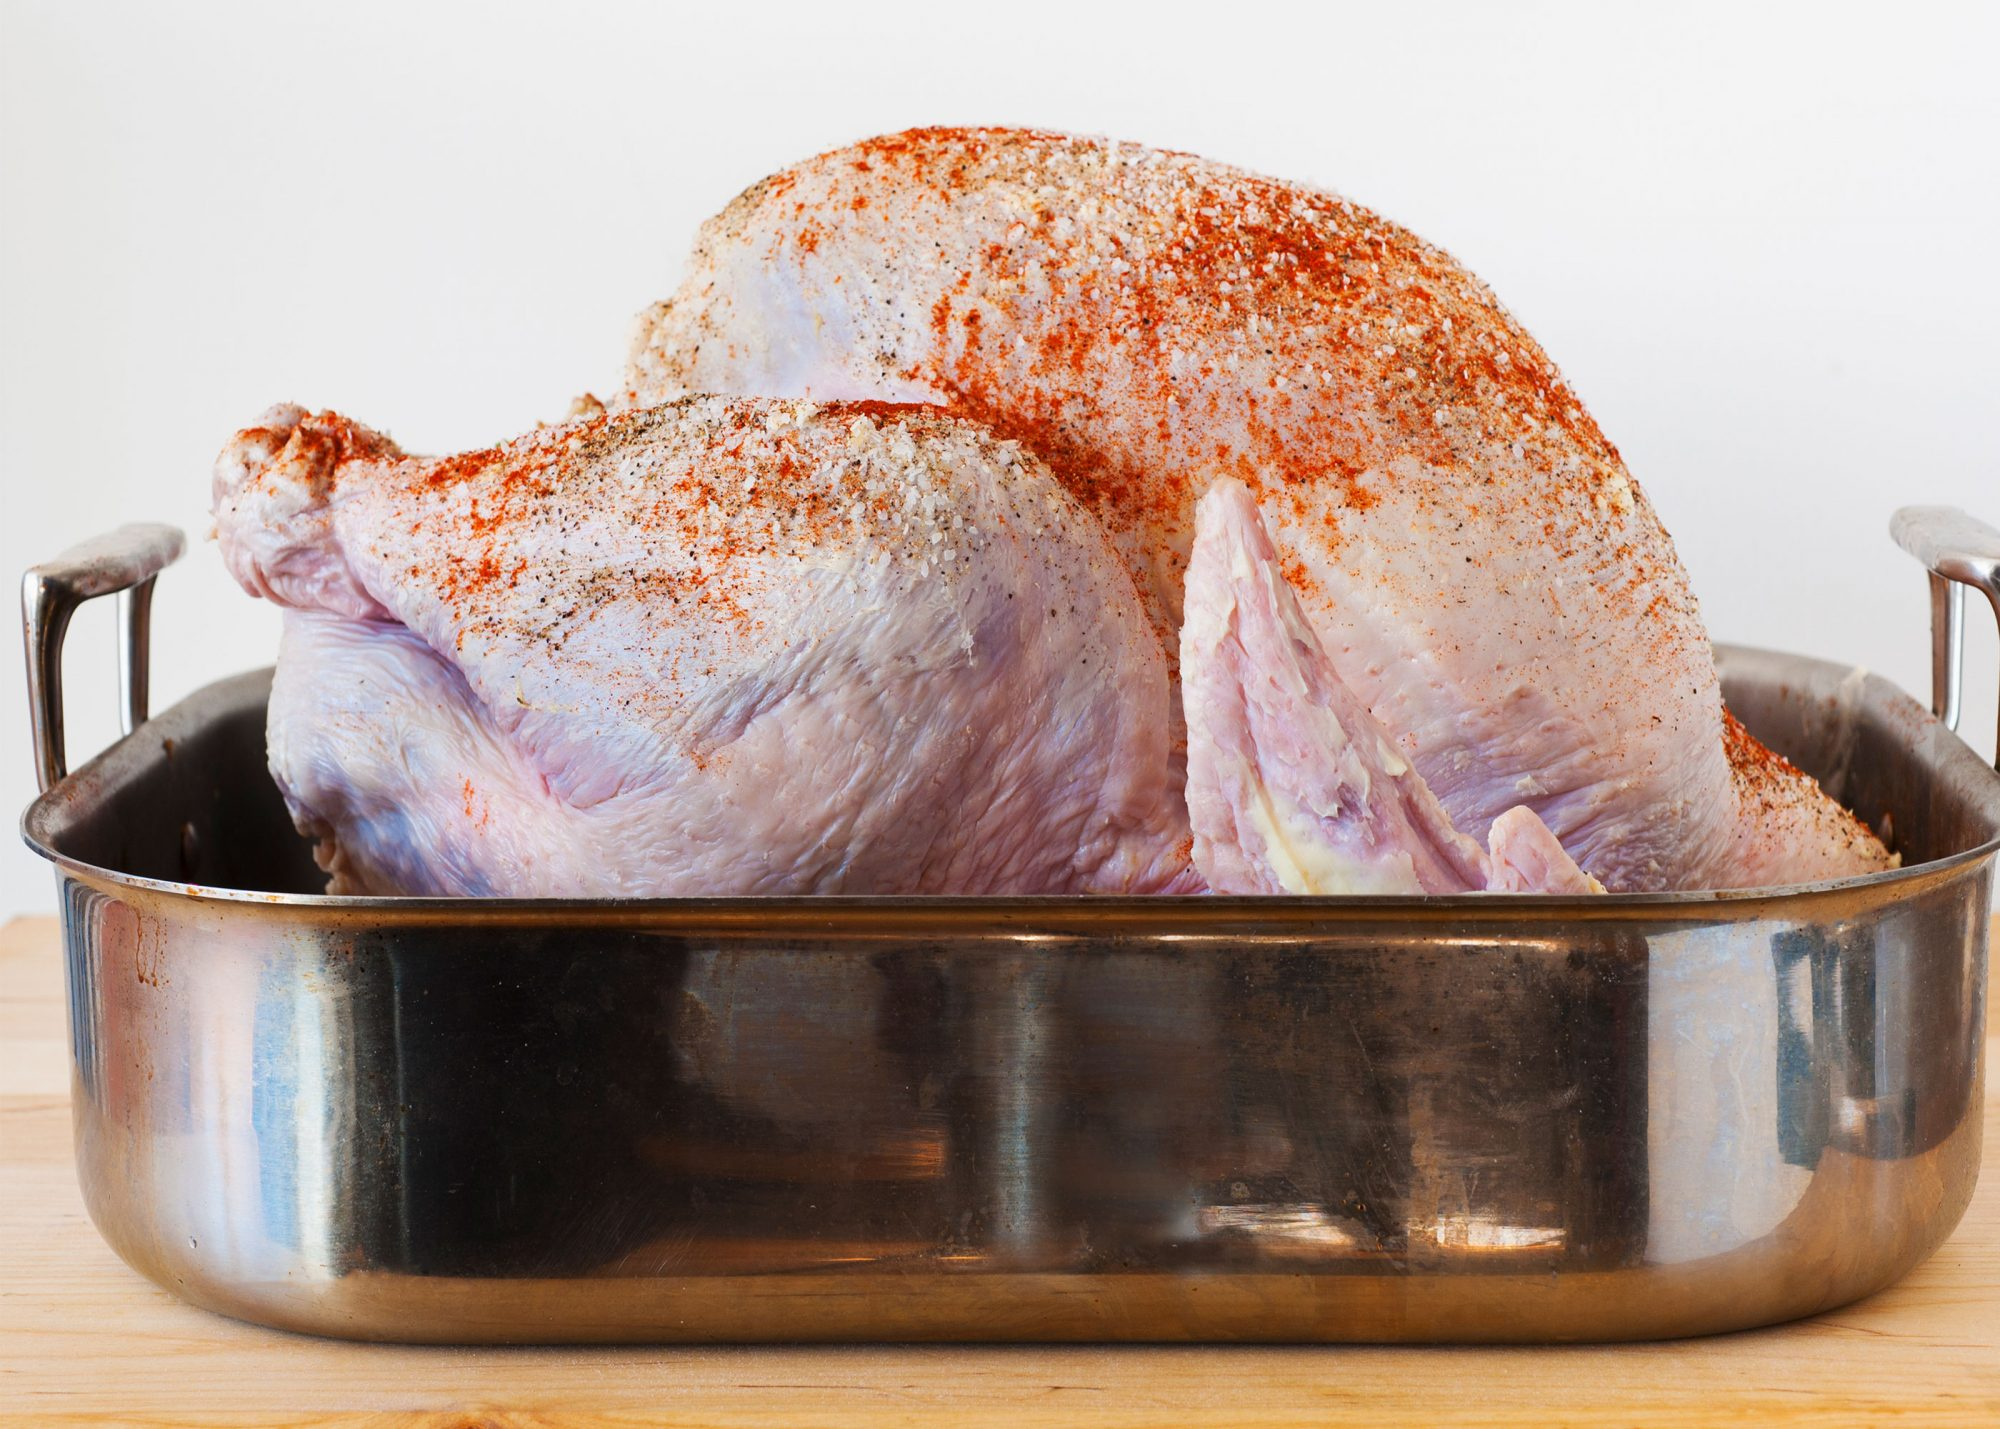 Unroasted turkey sprinkled with dry rub in a roasting pan